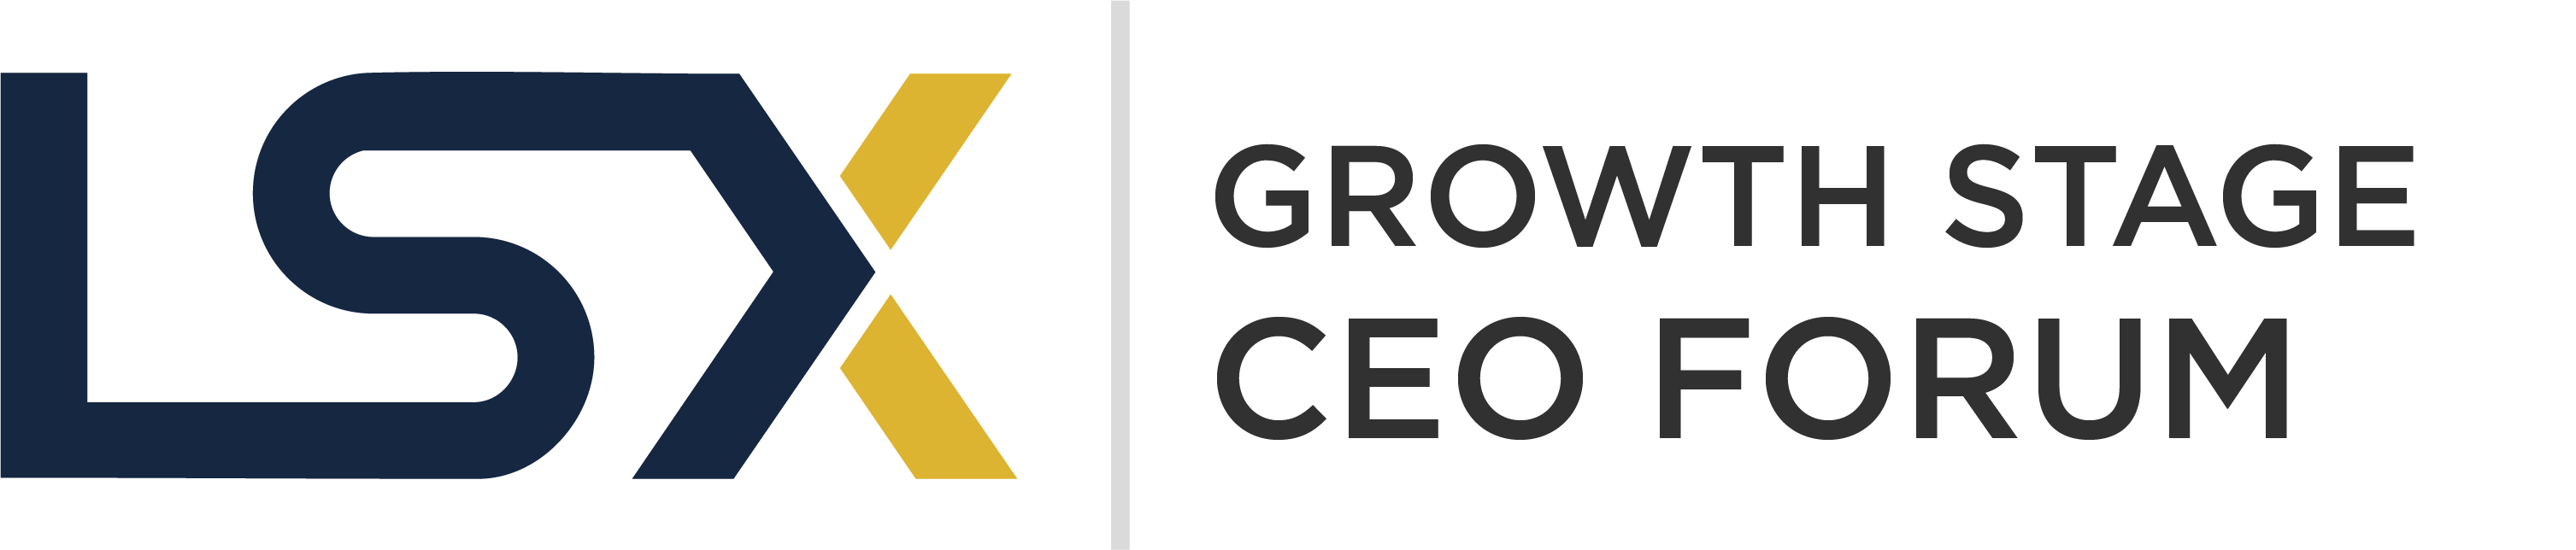 GrowthCEO